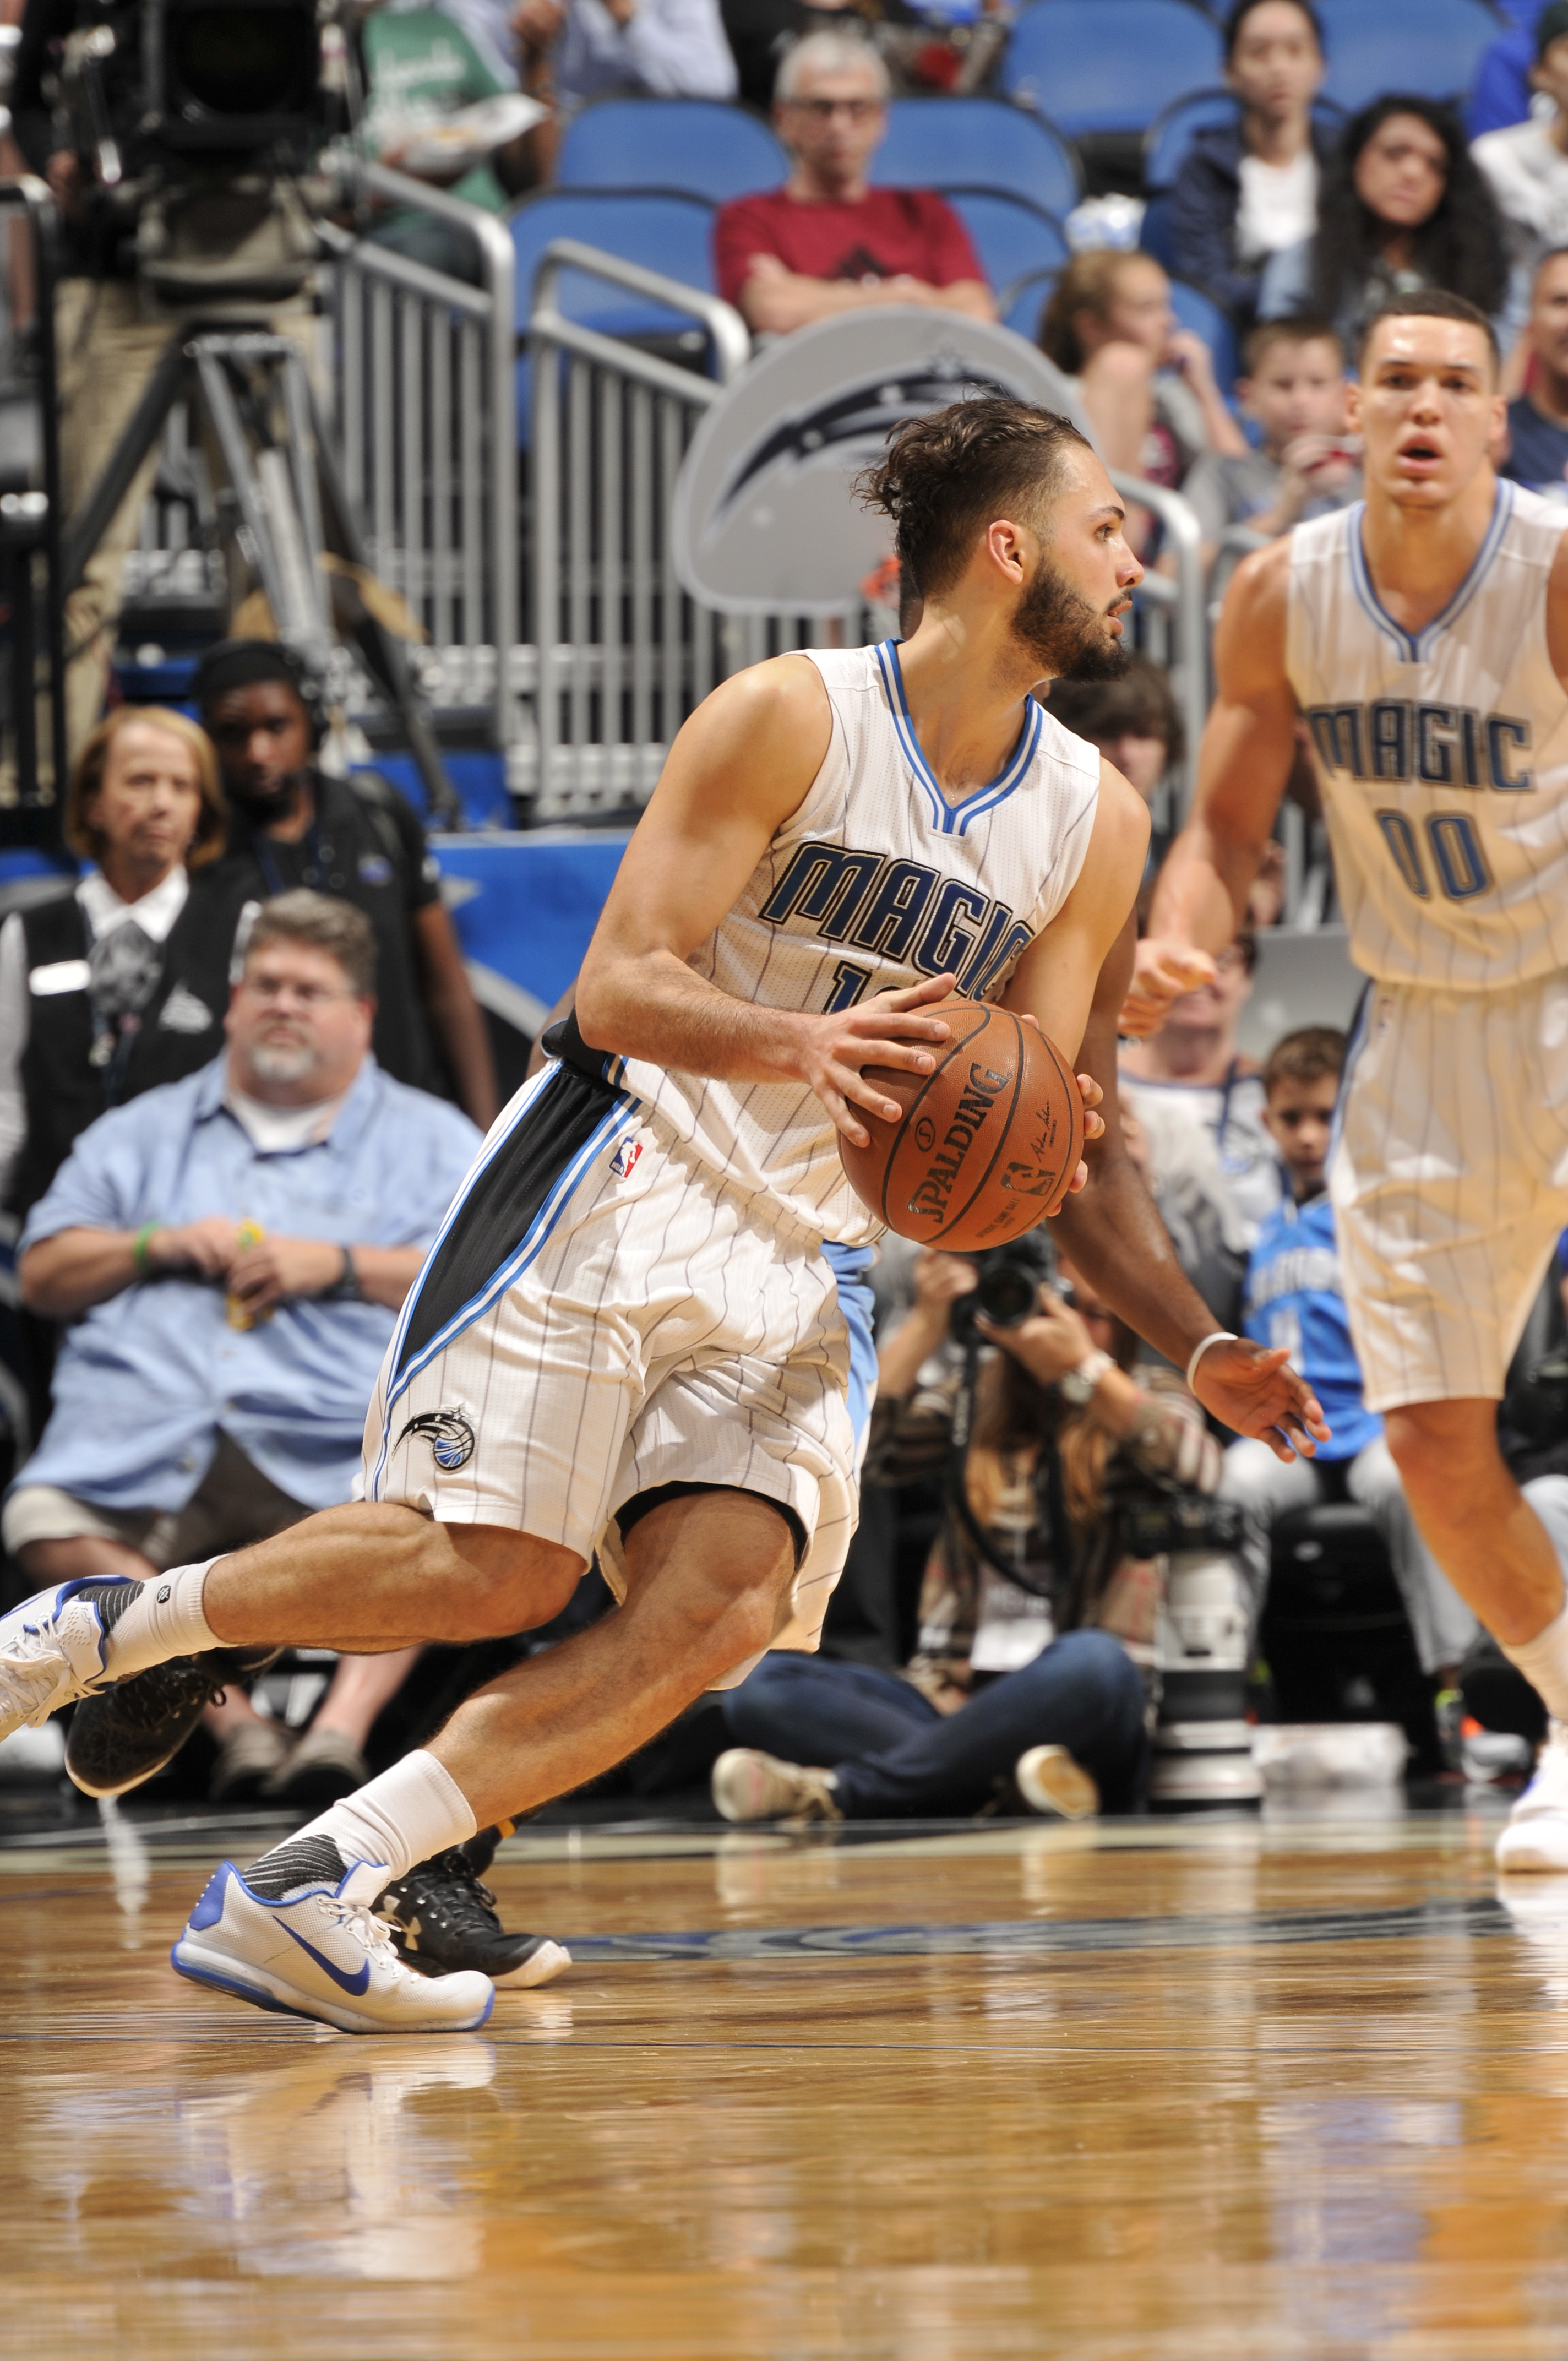 ORLANDO, FL - MARCH 15:  Evan Fournier #10 of the Orlando Magic handles the ball against the Denver Nuggets on March 15, 2016 at the Amway Center in Orlando, Florida. (Photo by Fernando Medina/NBAE via Getty Images)